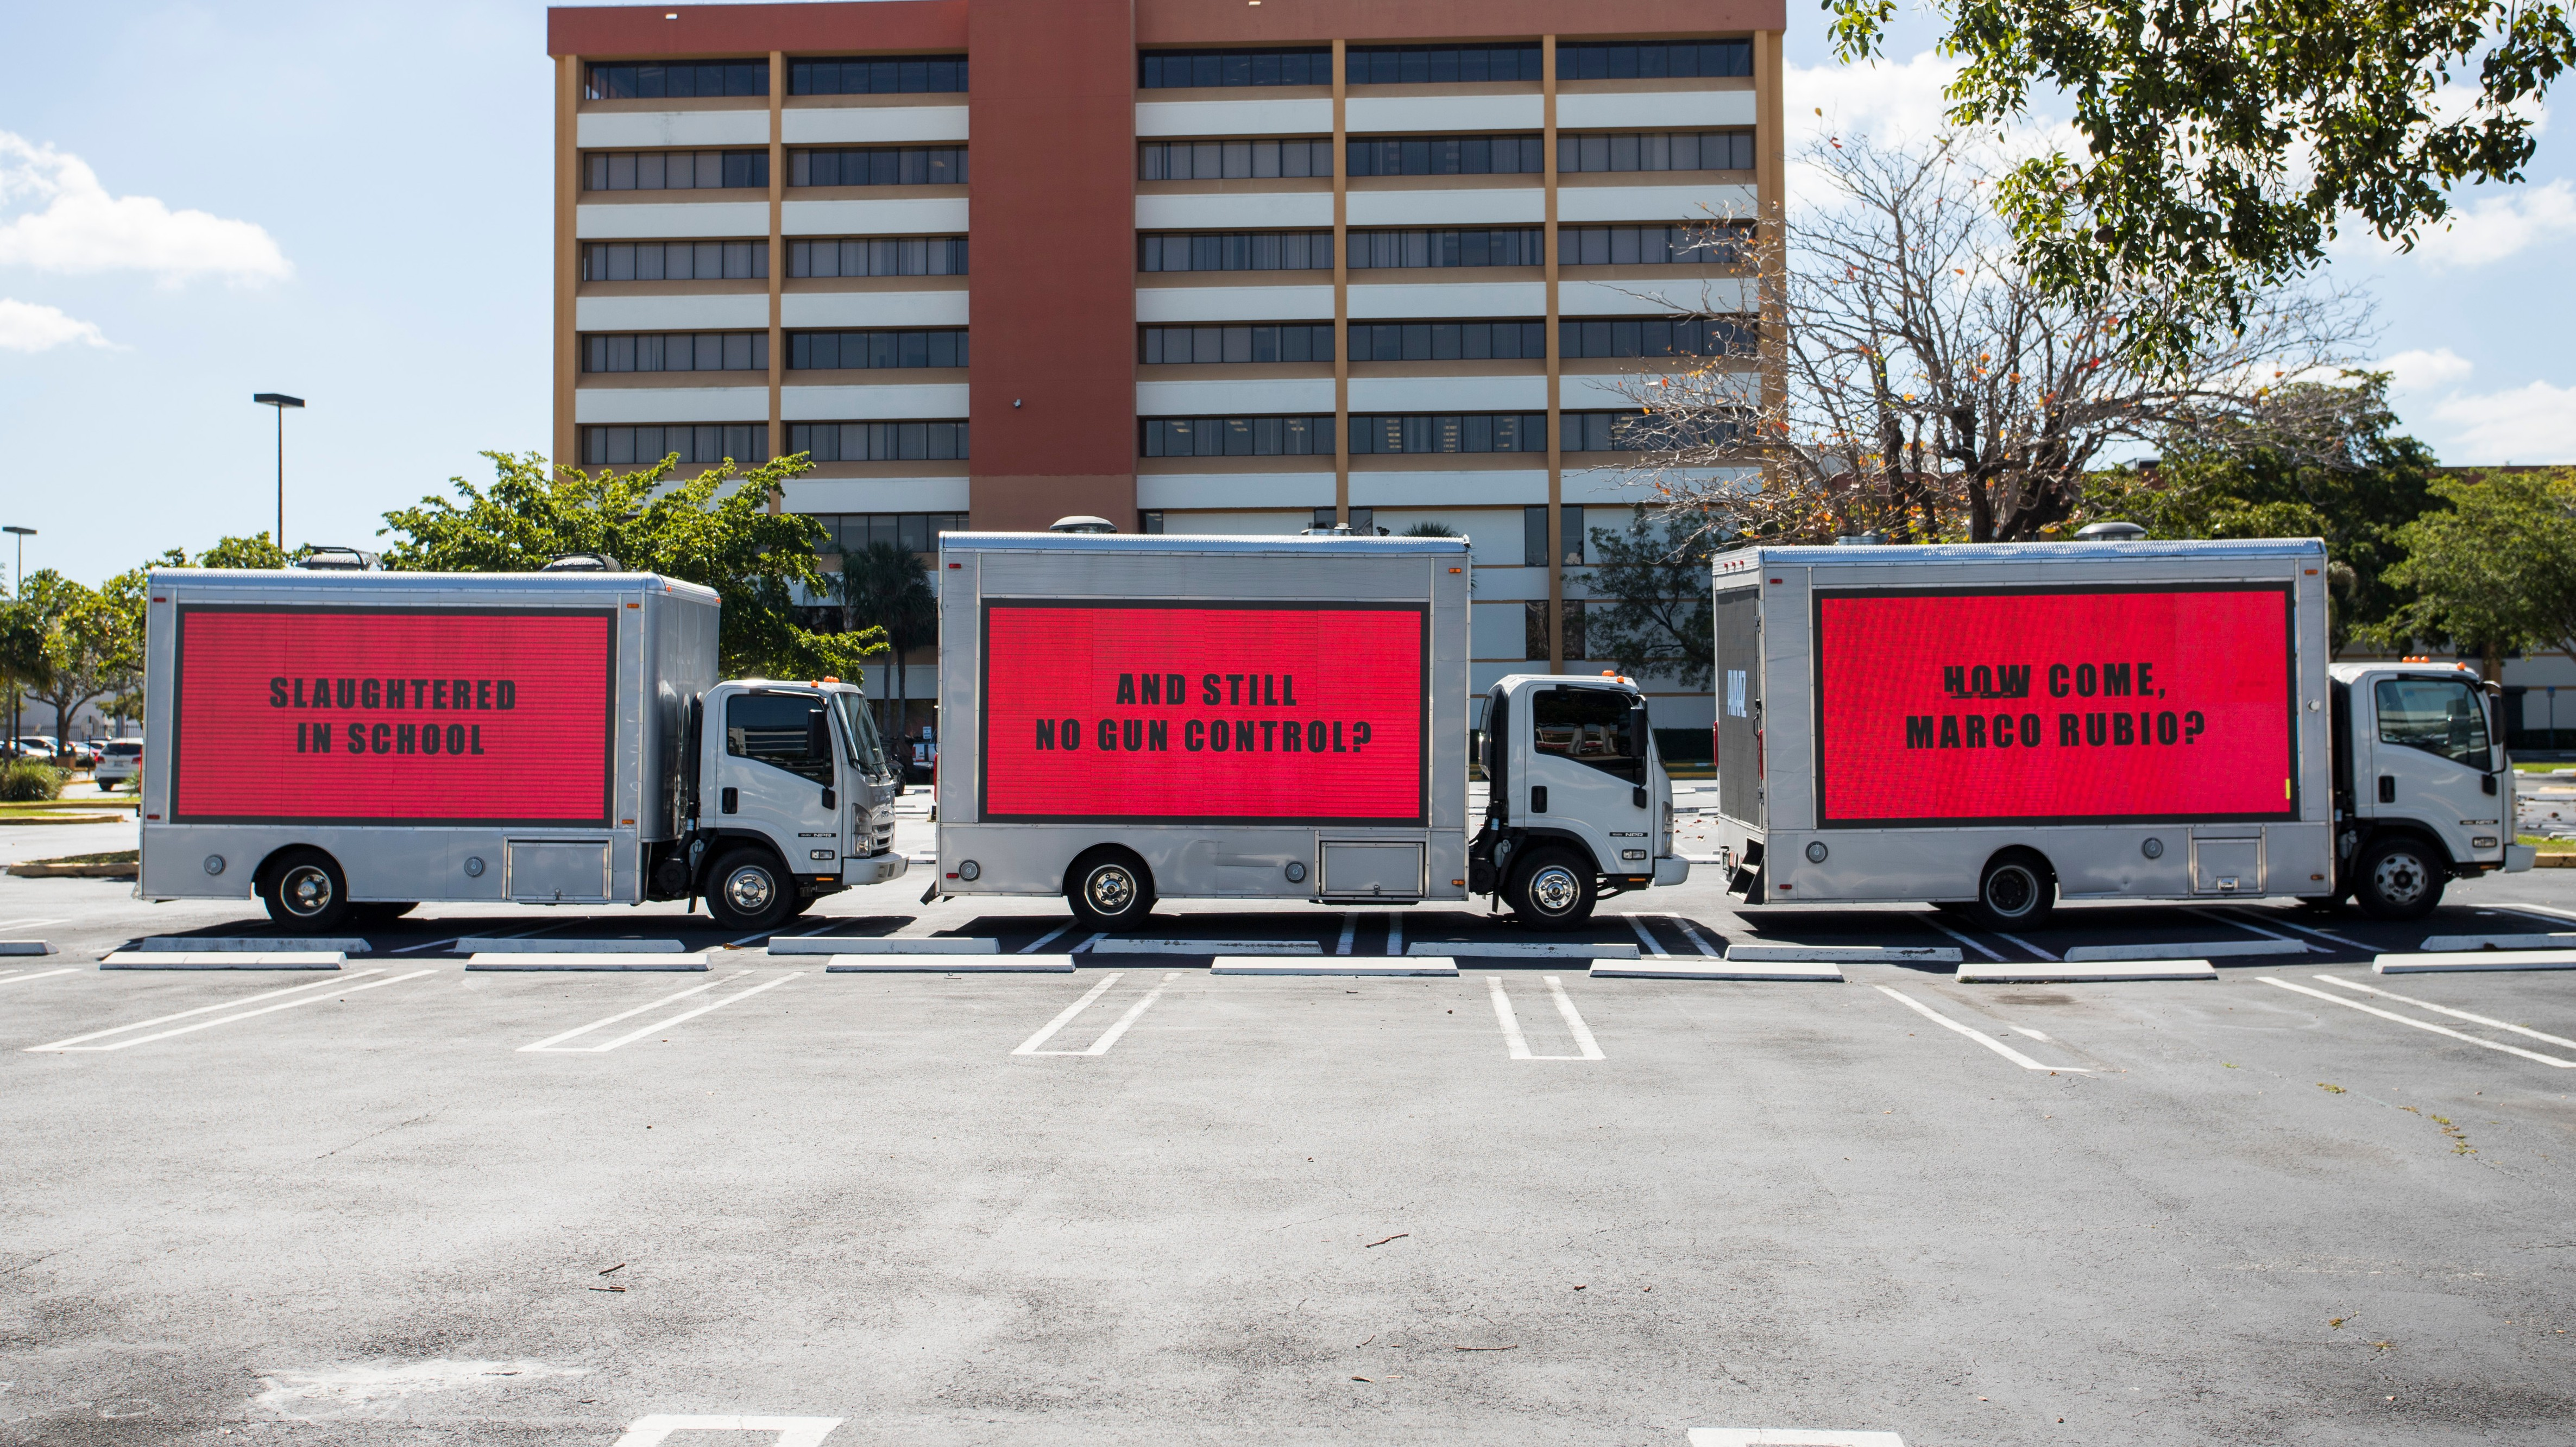 These Three Billboards Outside Marco Rubio's Office Demanded Gun Control